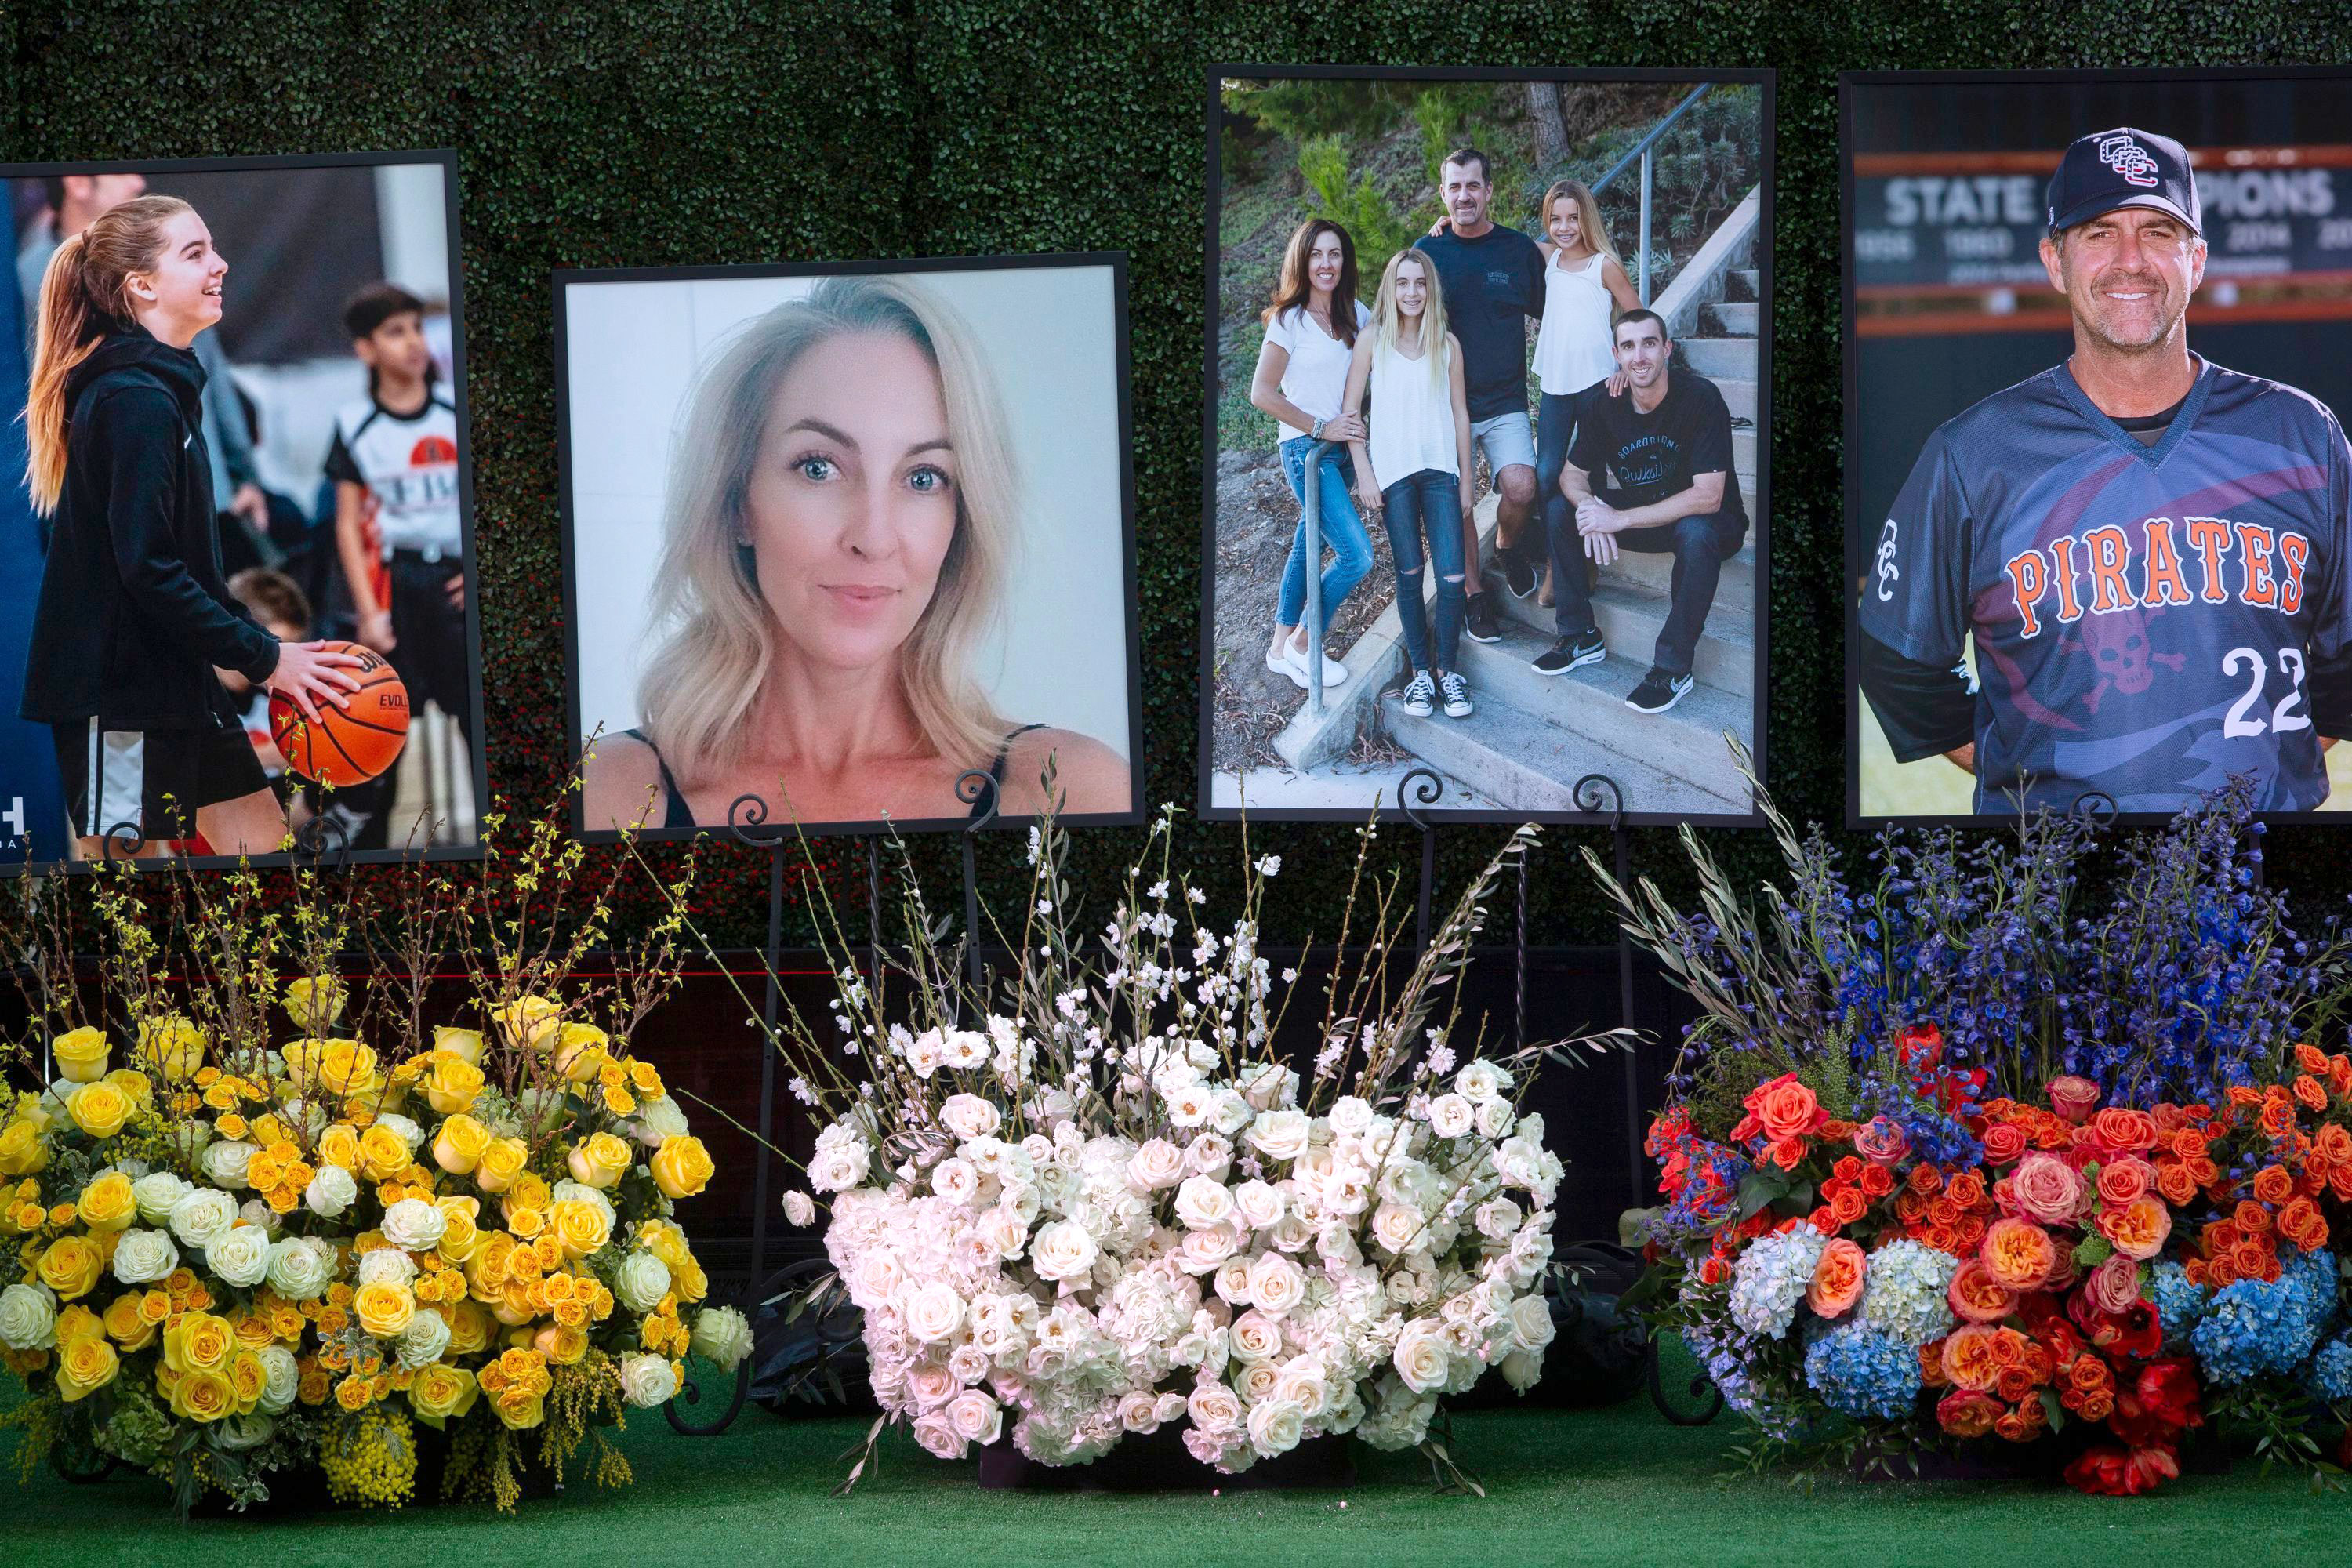 Altobelli Family Remembered at Angel Stadium Memorial Service 2 Weeks After Kobe Bryant Crash